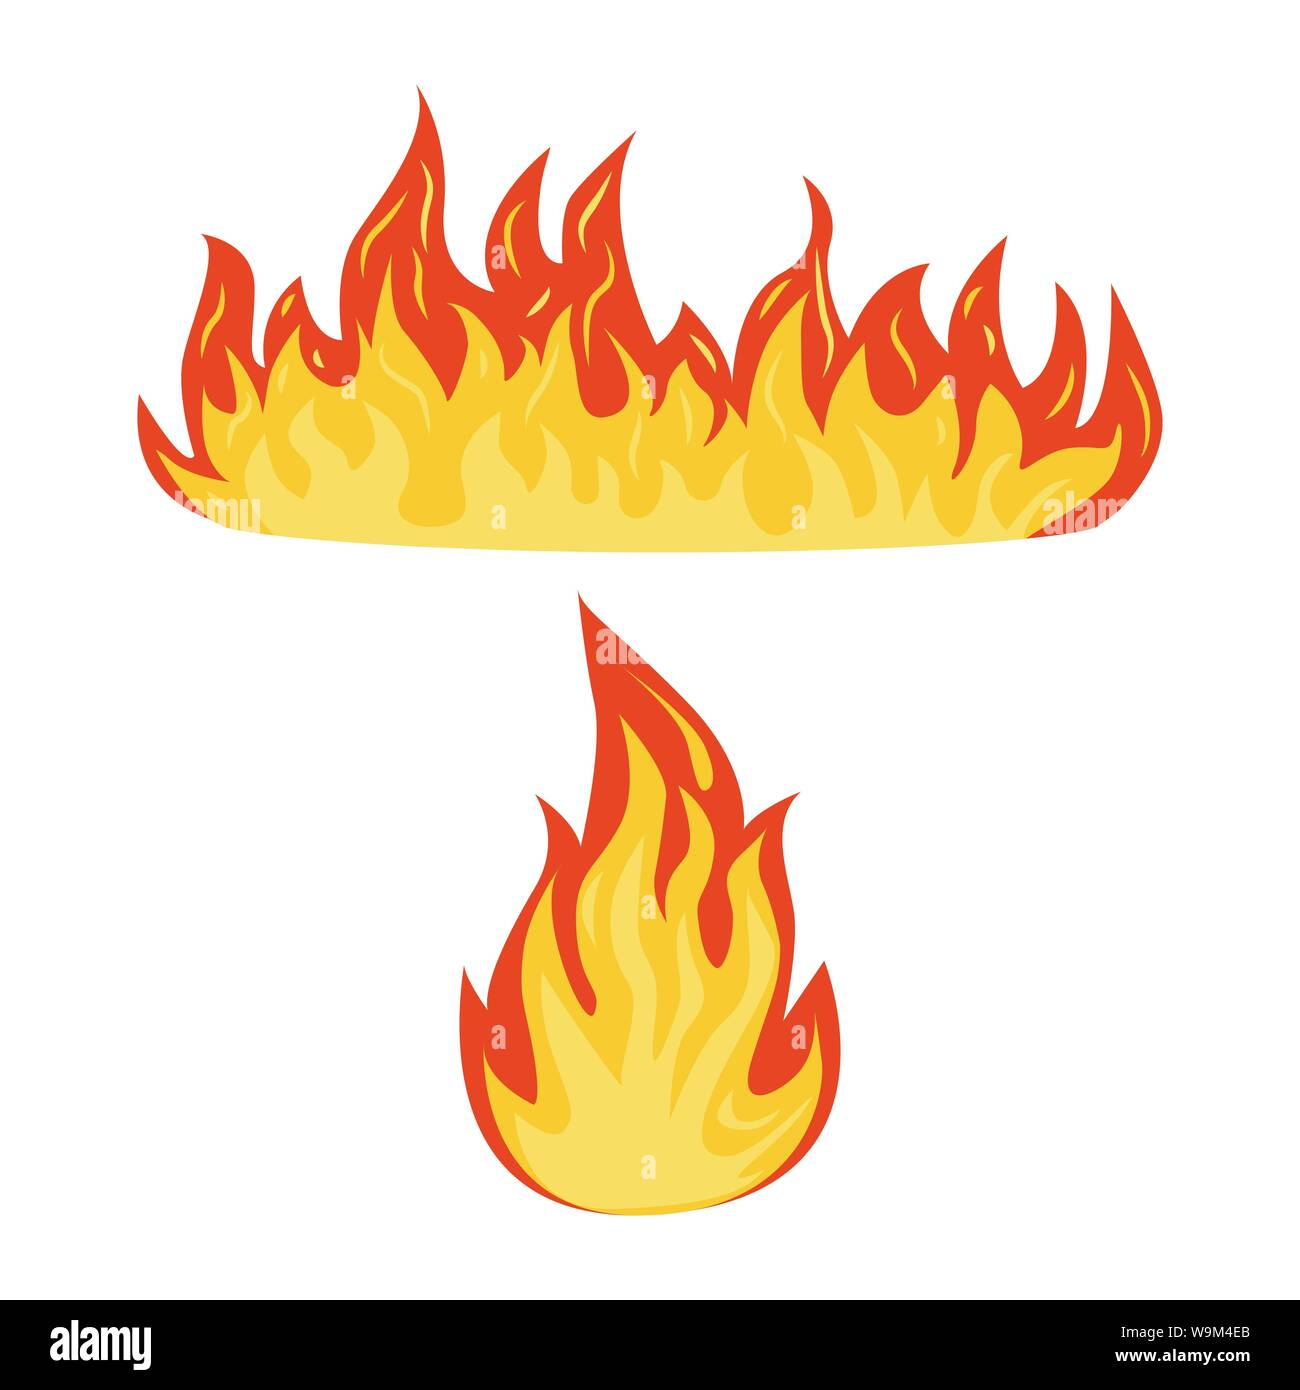 Set Of A Fire Flames Isolated On A White Background Hot Cartoon Flame Energy Flaming Symbols Flat Design Vector Illustration Stock Vector Image Art Alamy Learn how to make a procedure fire animation without having to animate it frame by frame! https www alamy com set of a fire flames isolated on a white background hot cartoon flame energy flaming symbols flat design vector illustration image264130003 html